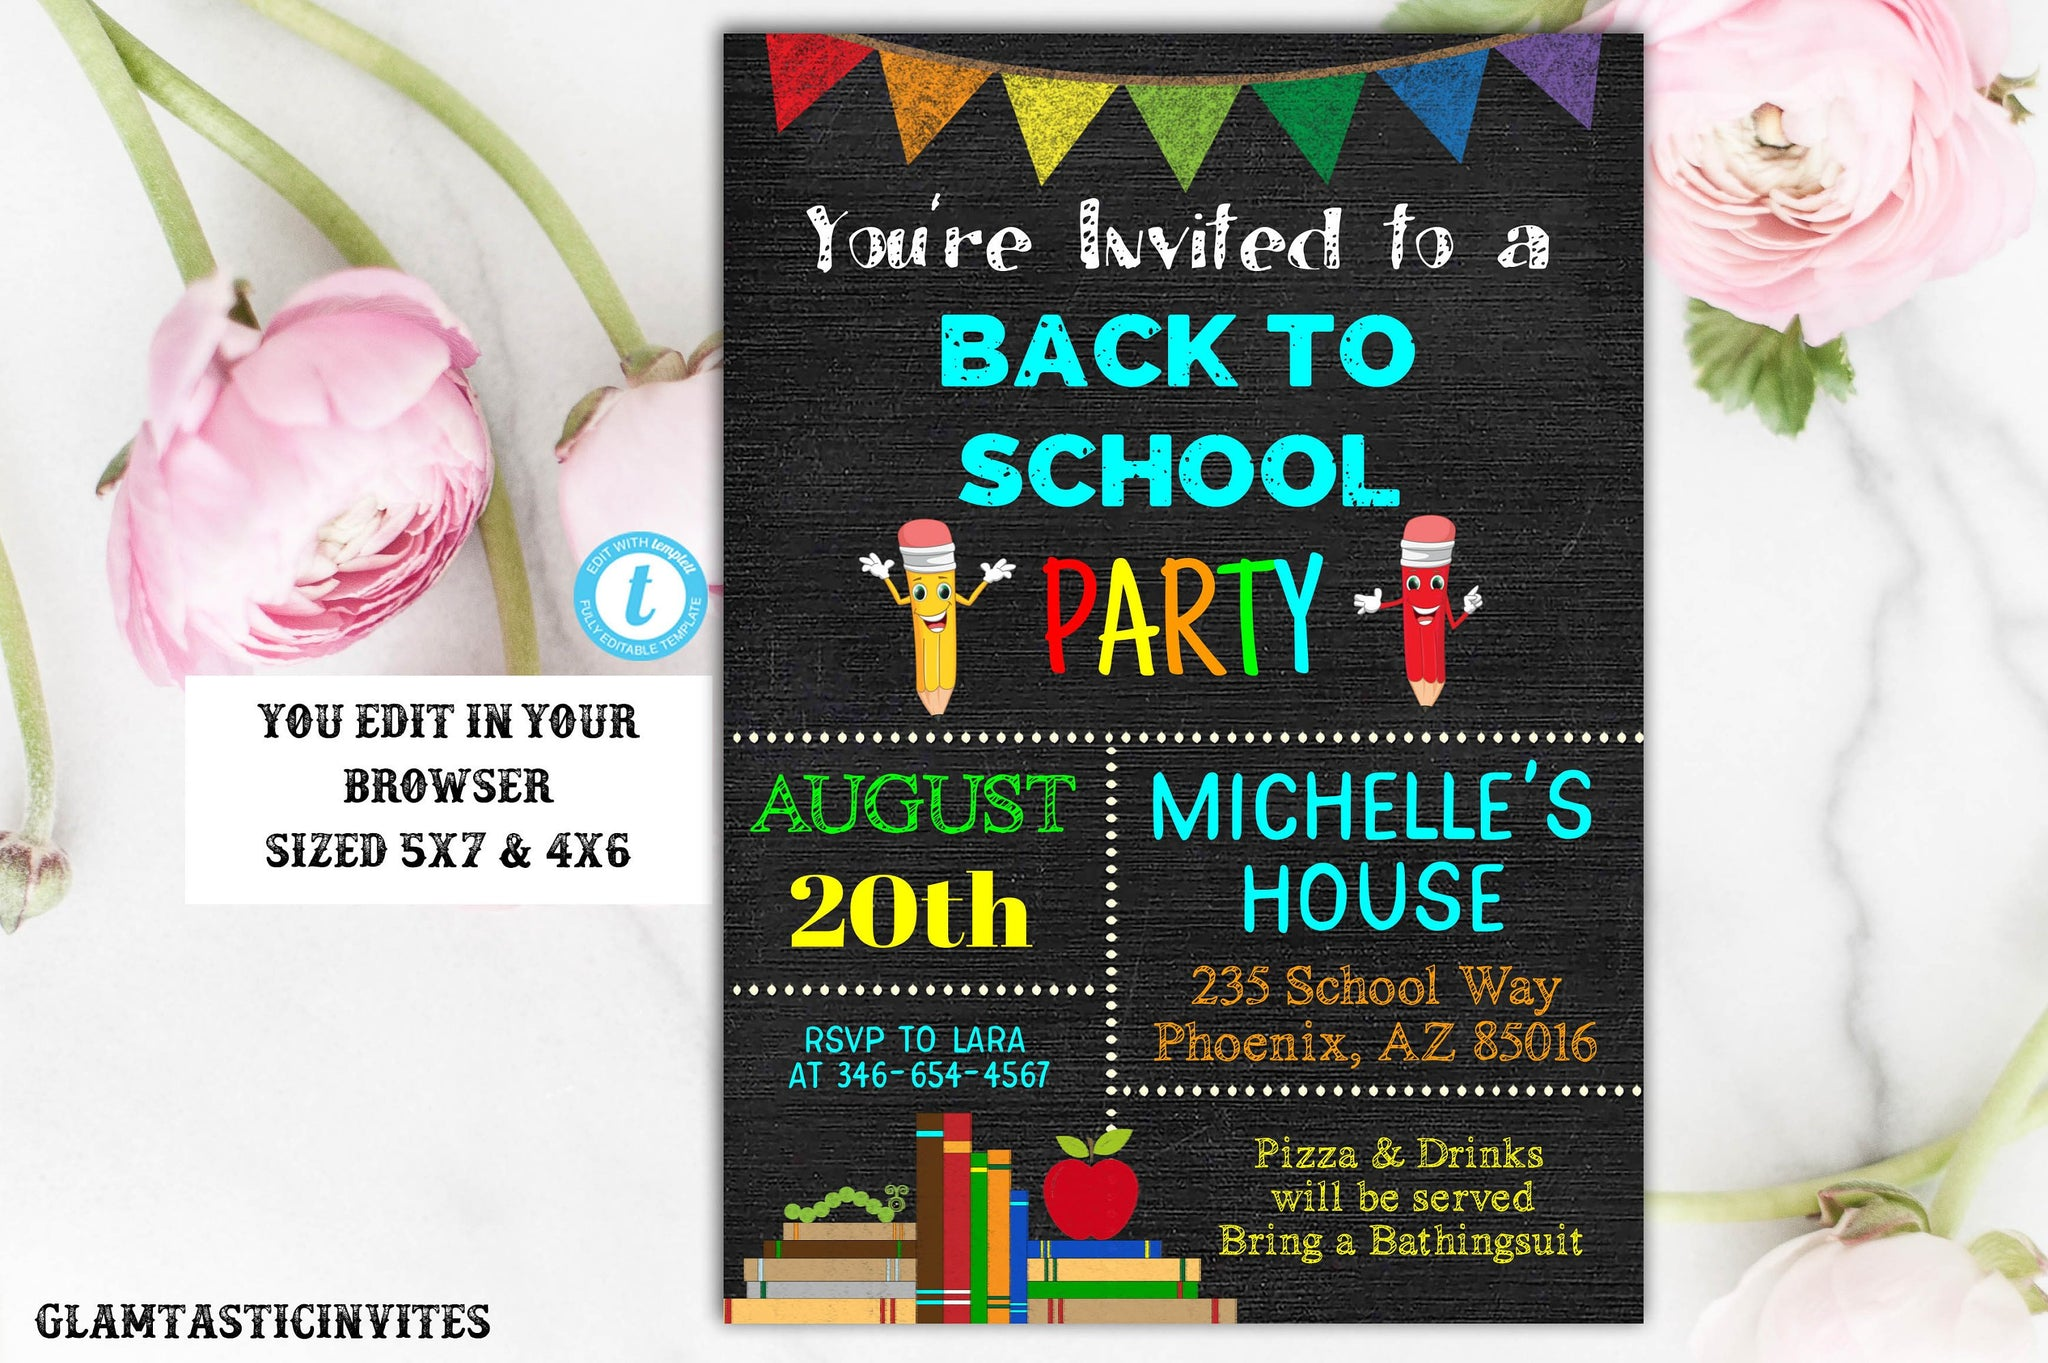 Back to School Party Invitation Template Editable Printable Instant Download Chalkboard End of Summer Bash Pool Party YOU EDIT Pencil DIY